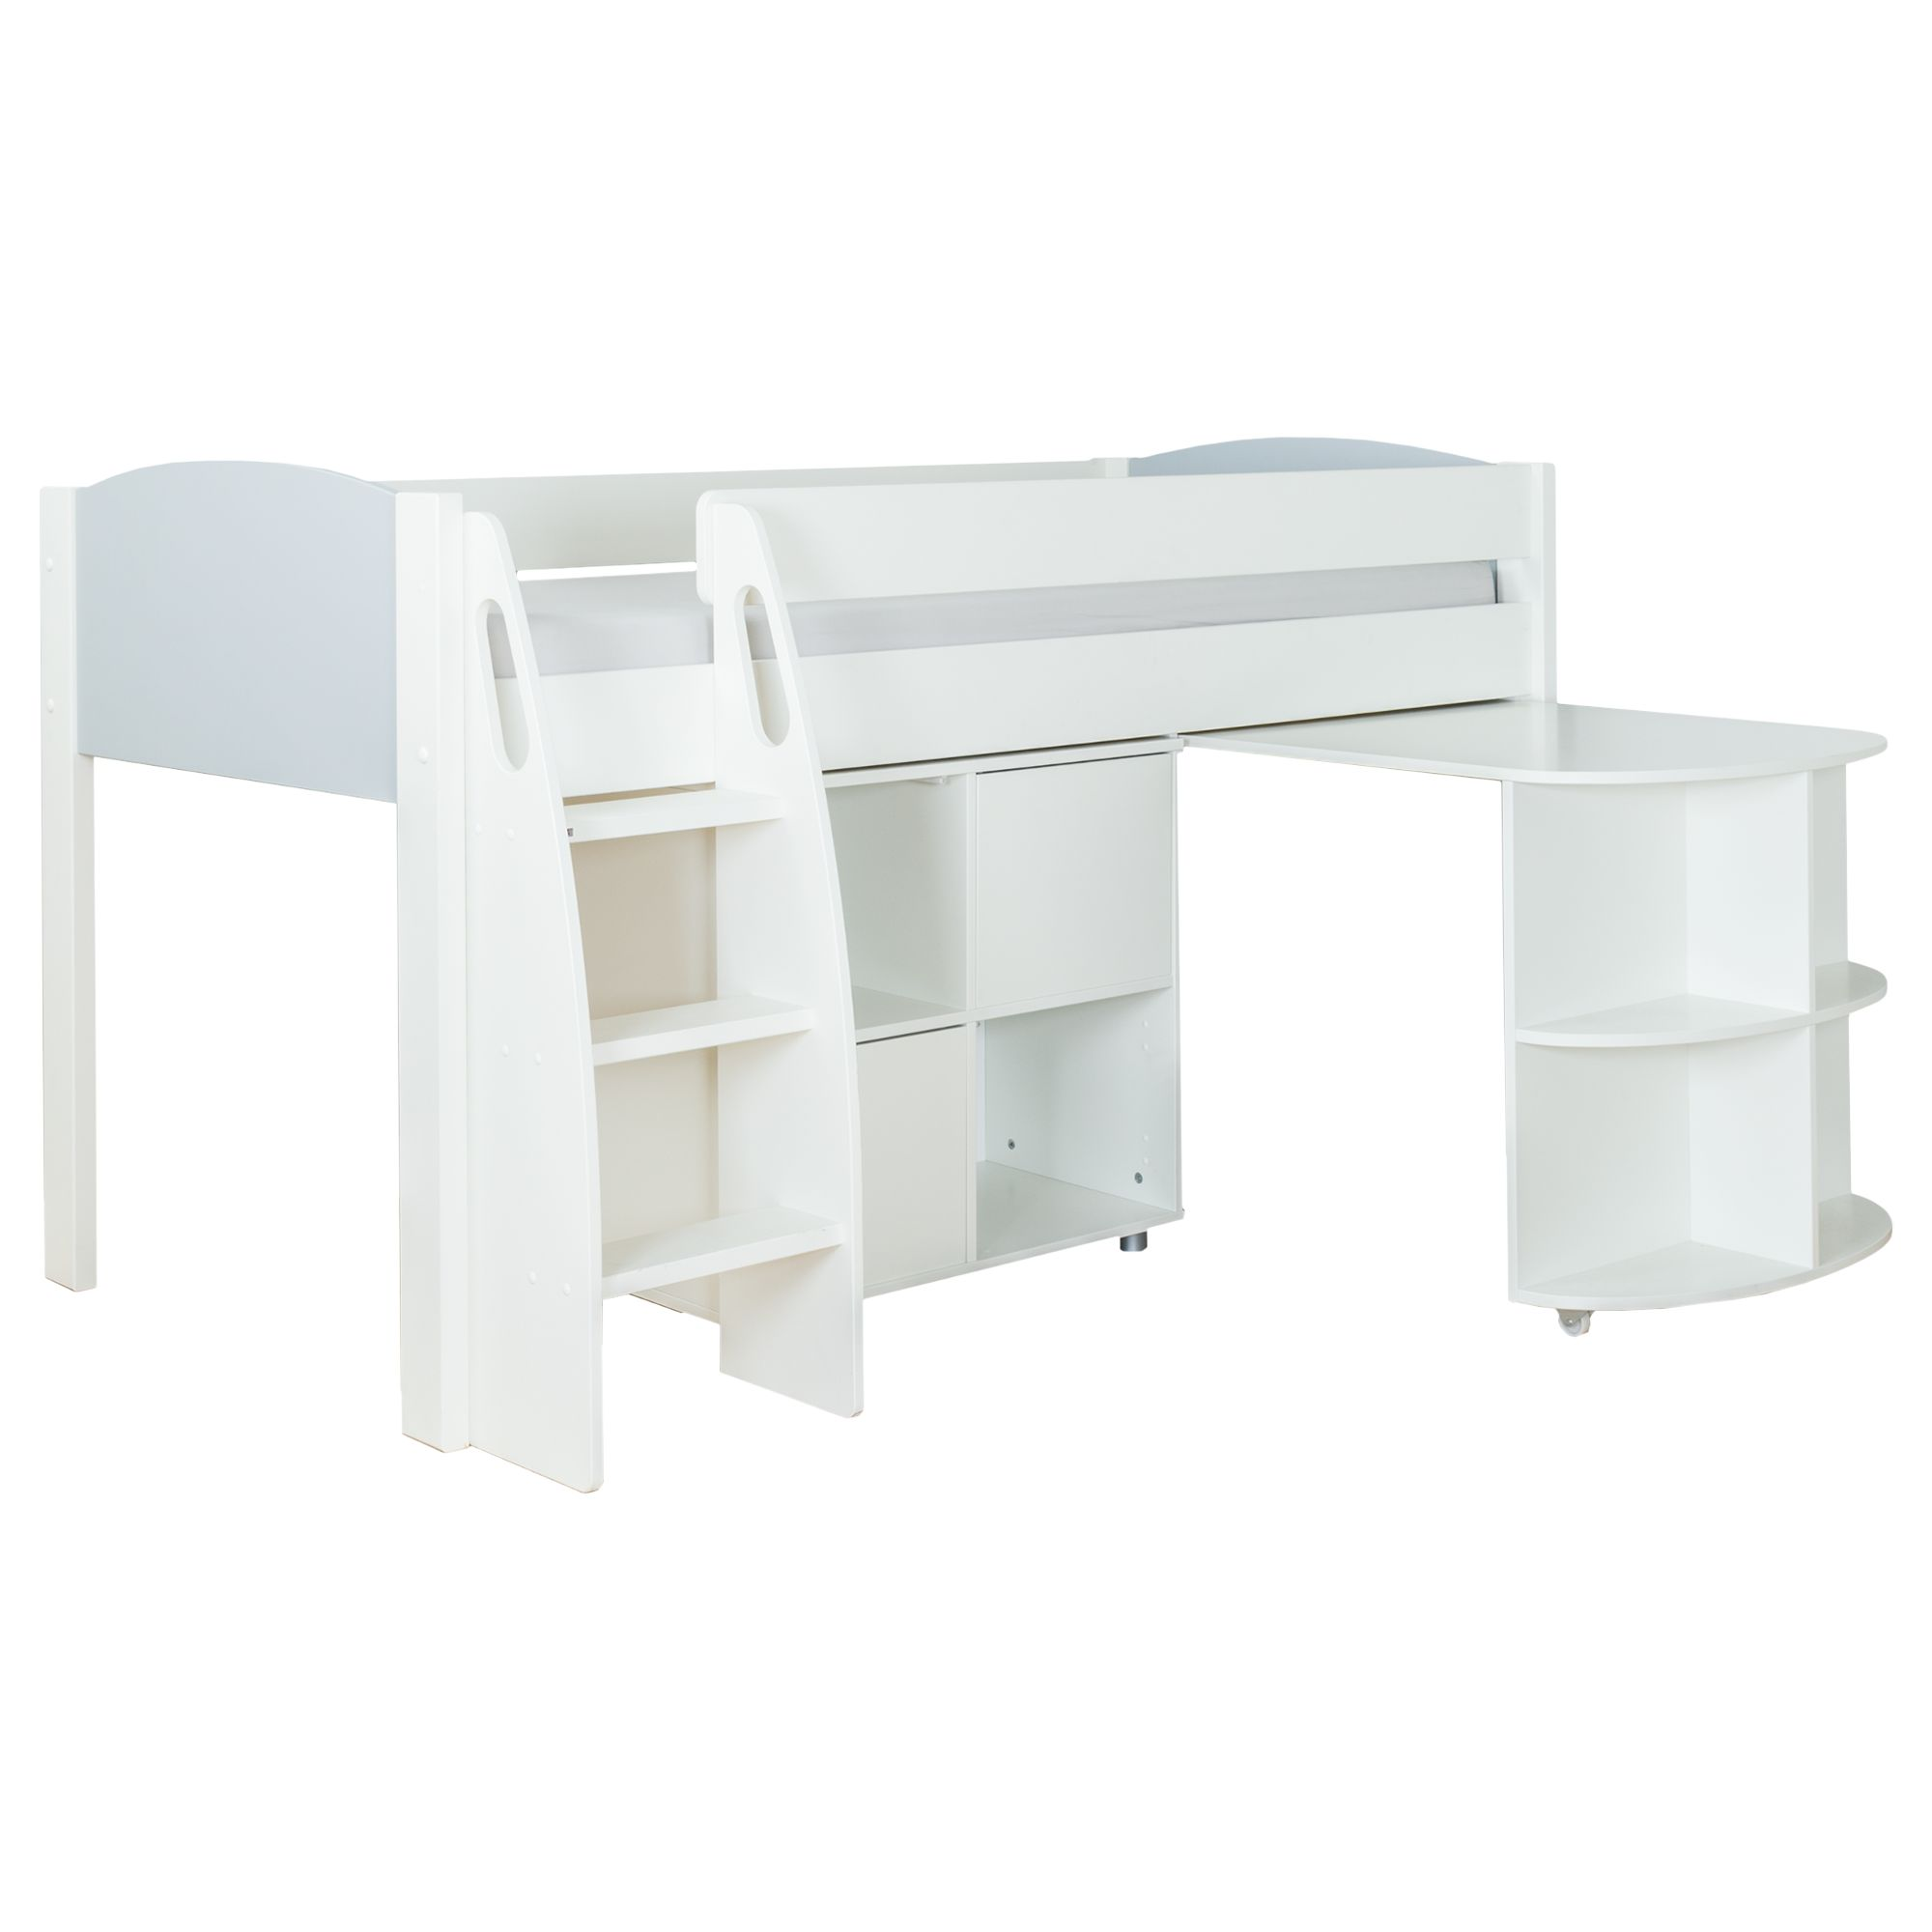 Stompa Stompa Uno S Plus Mid-Sleeper with Grey Headboard, Pull-Out Desk and 2 Door Cube Unit